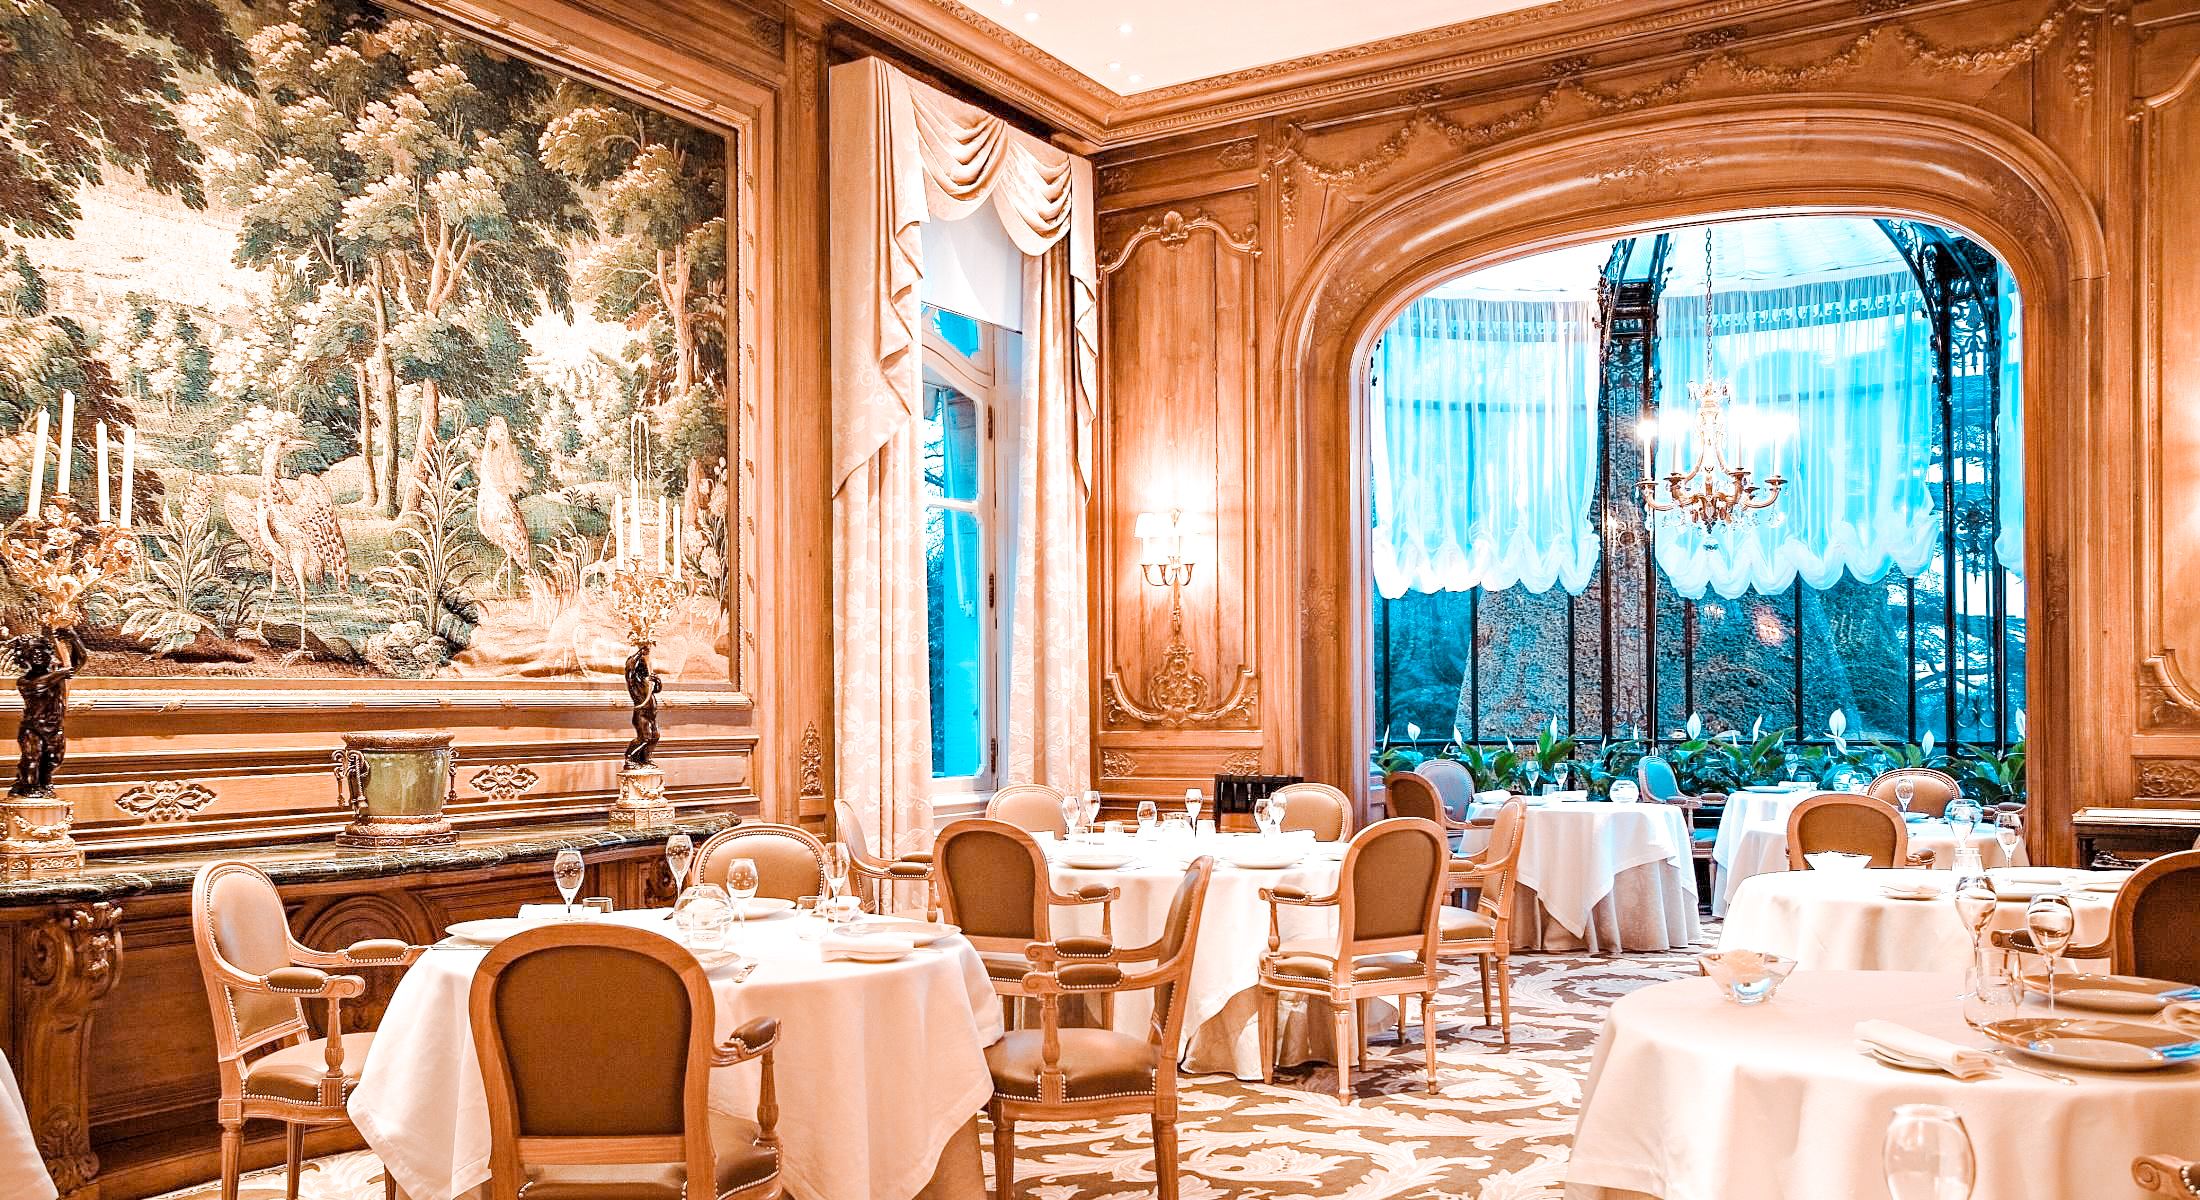 best restaurants in Reims Le Parc Restaurant Les Crayeres